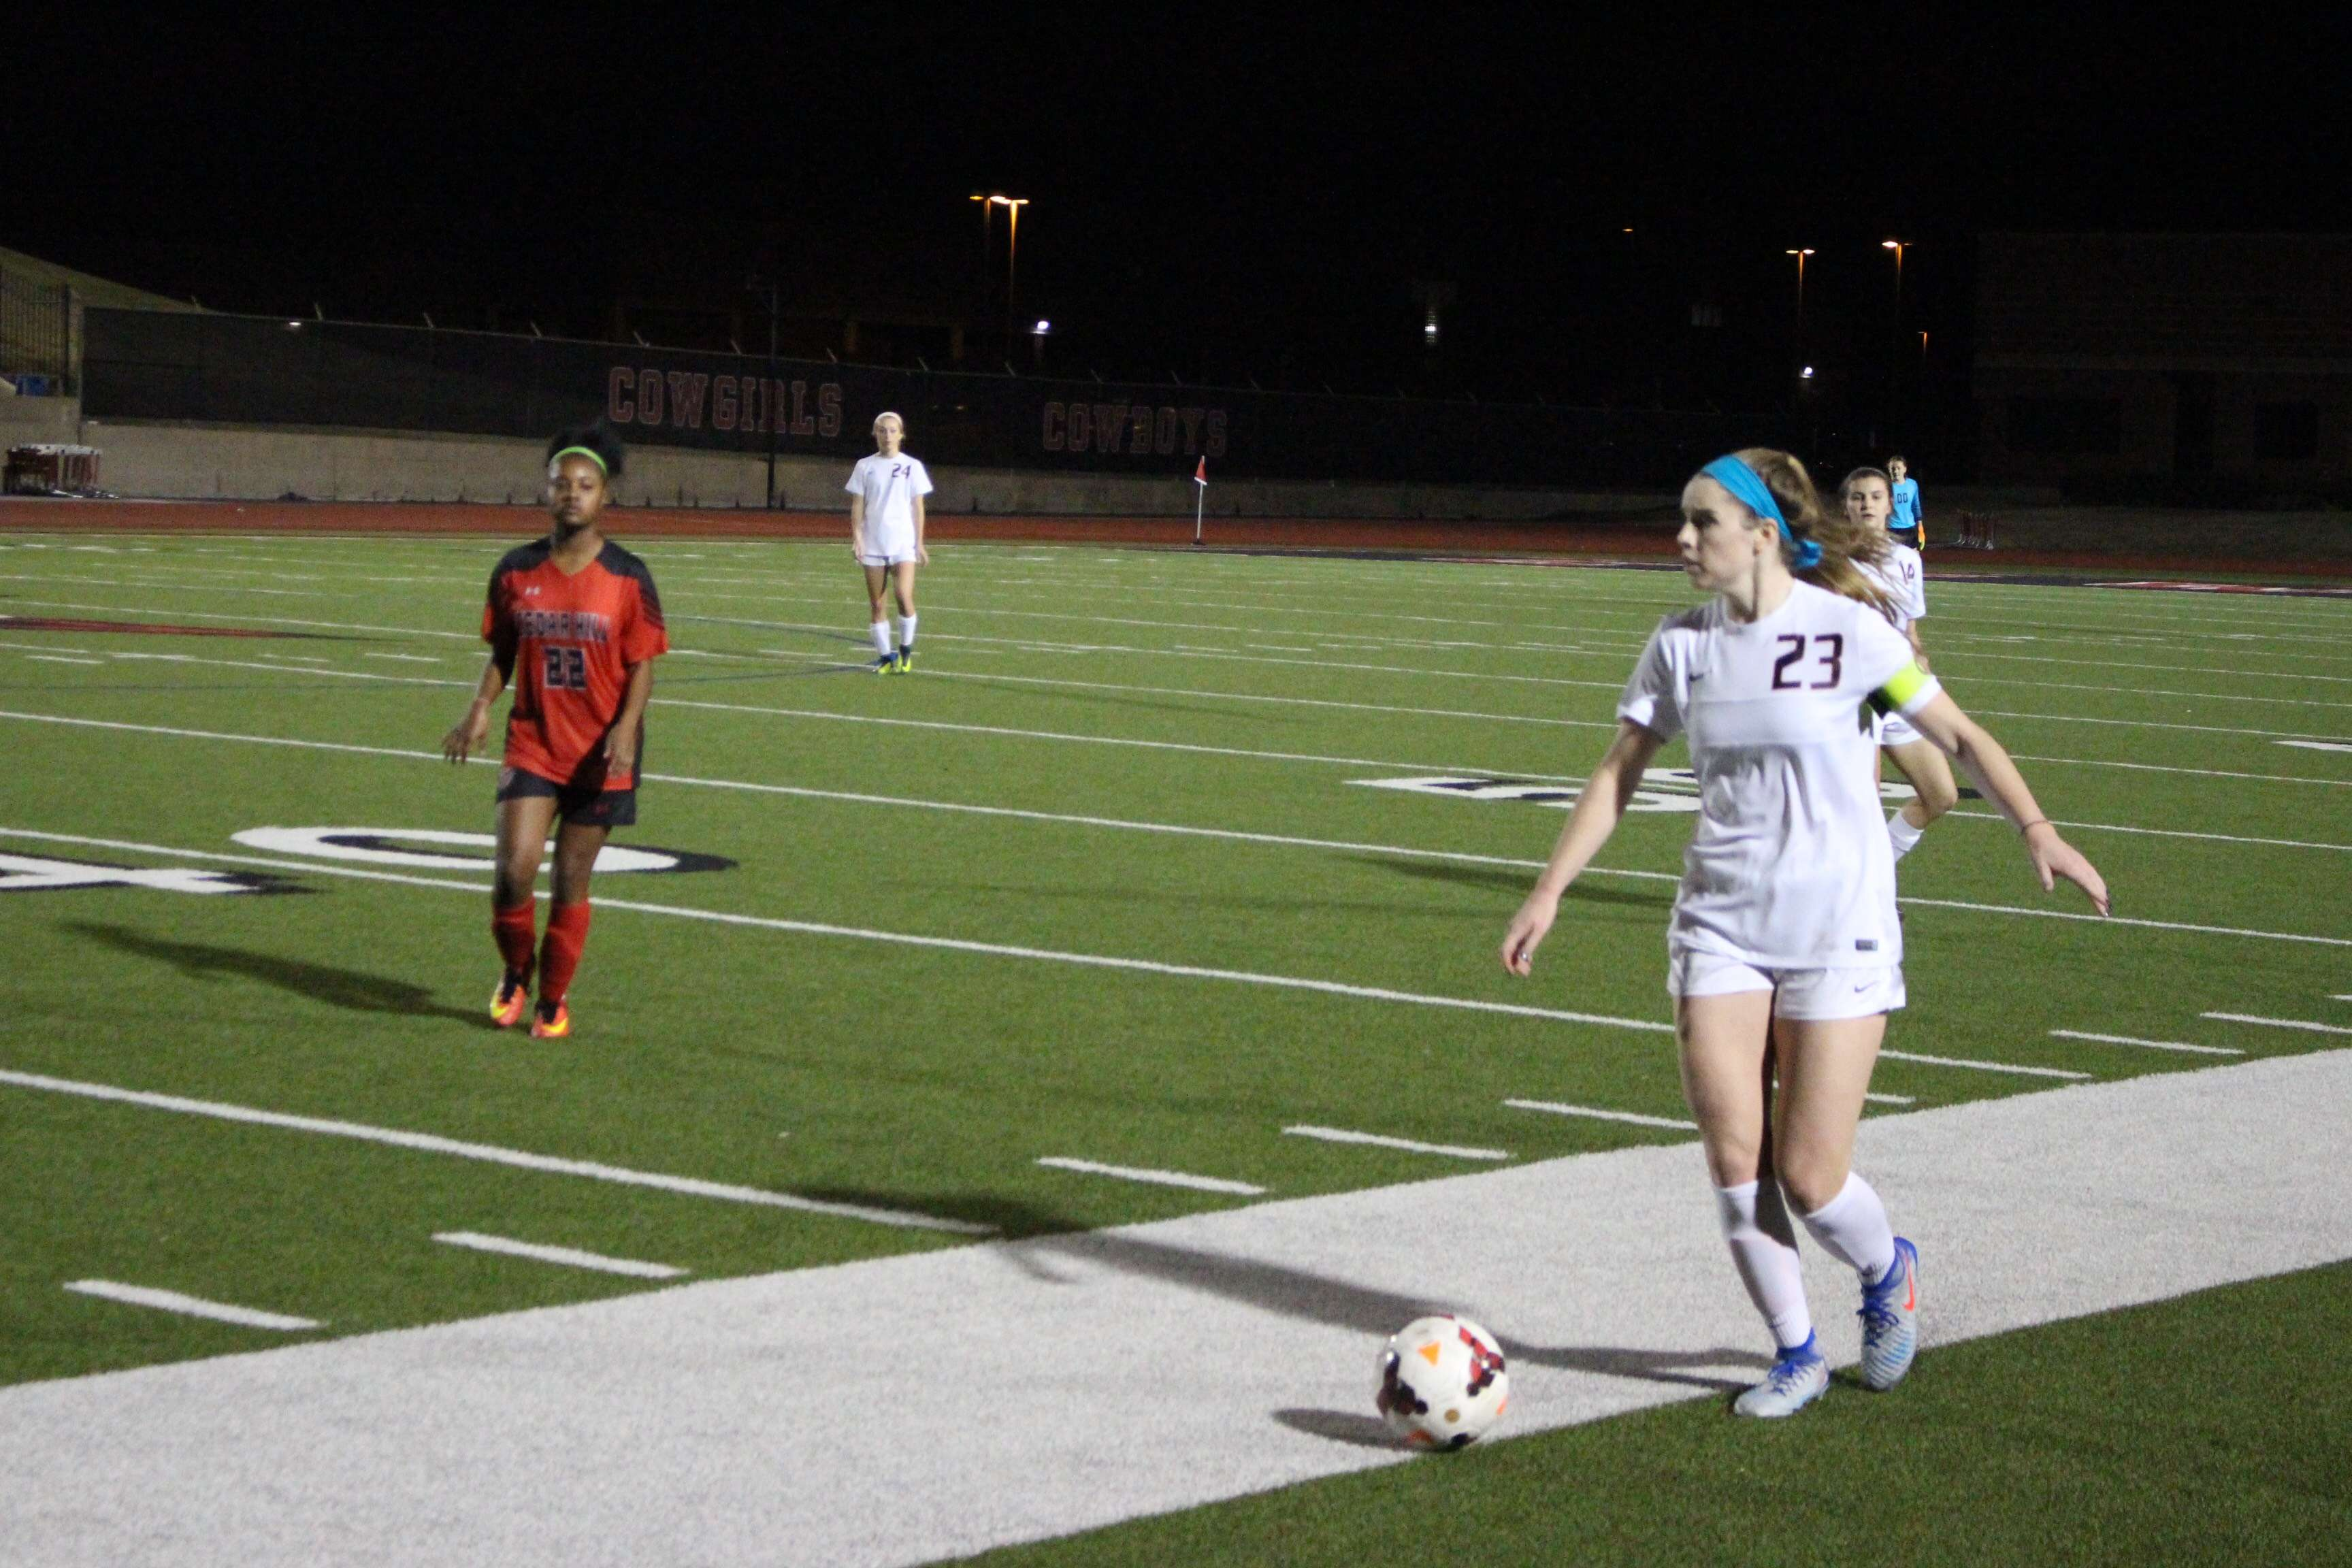 Coppell High School senior defender Sarah Houchin looks to pass to a teammate in the second half of Friday's game against Cedar Hill at Buddy Echols Field. Houchin scored a goal in Coppell's 4-0 win over the Longhorns.